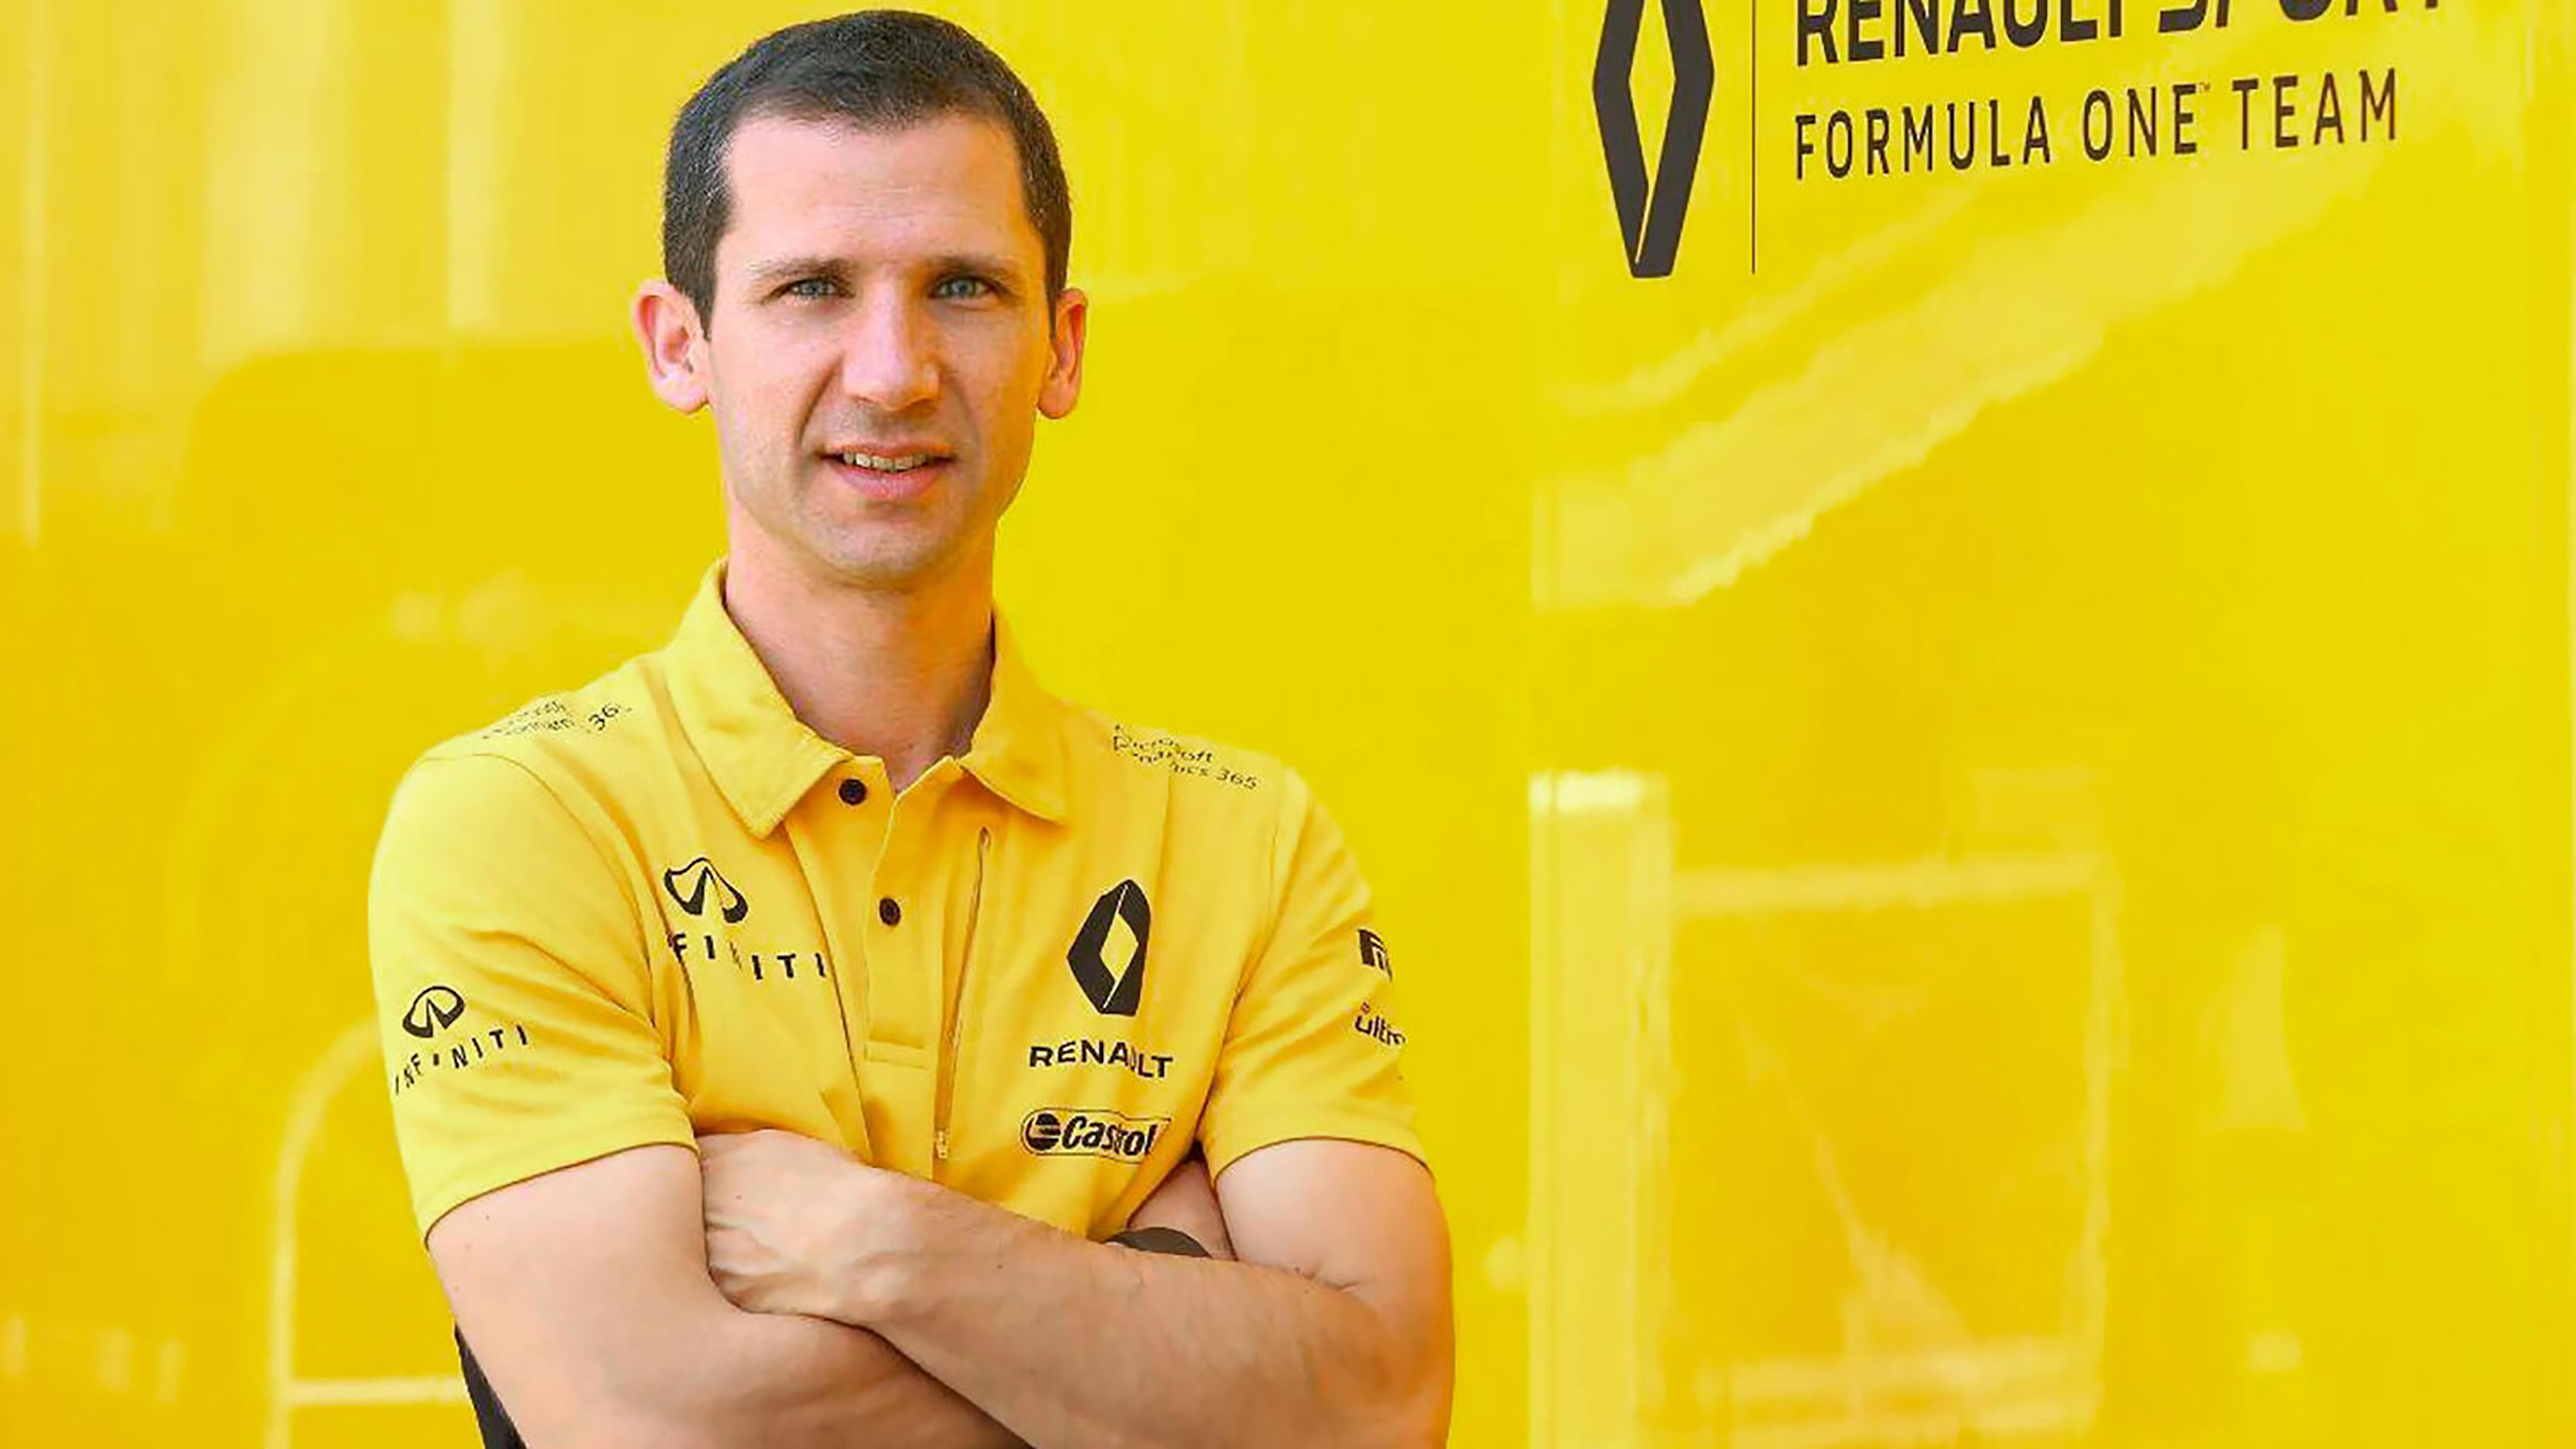 INFINITI and Renault F1™ Team Engine Technical Director Rémi Taffin